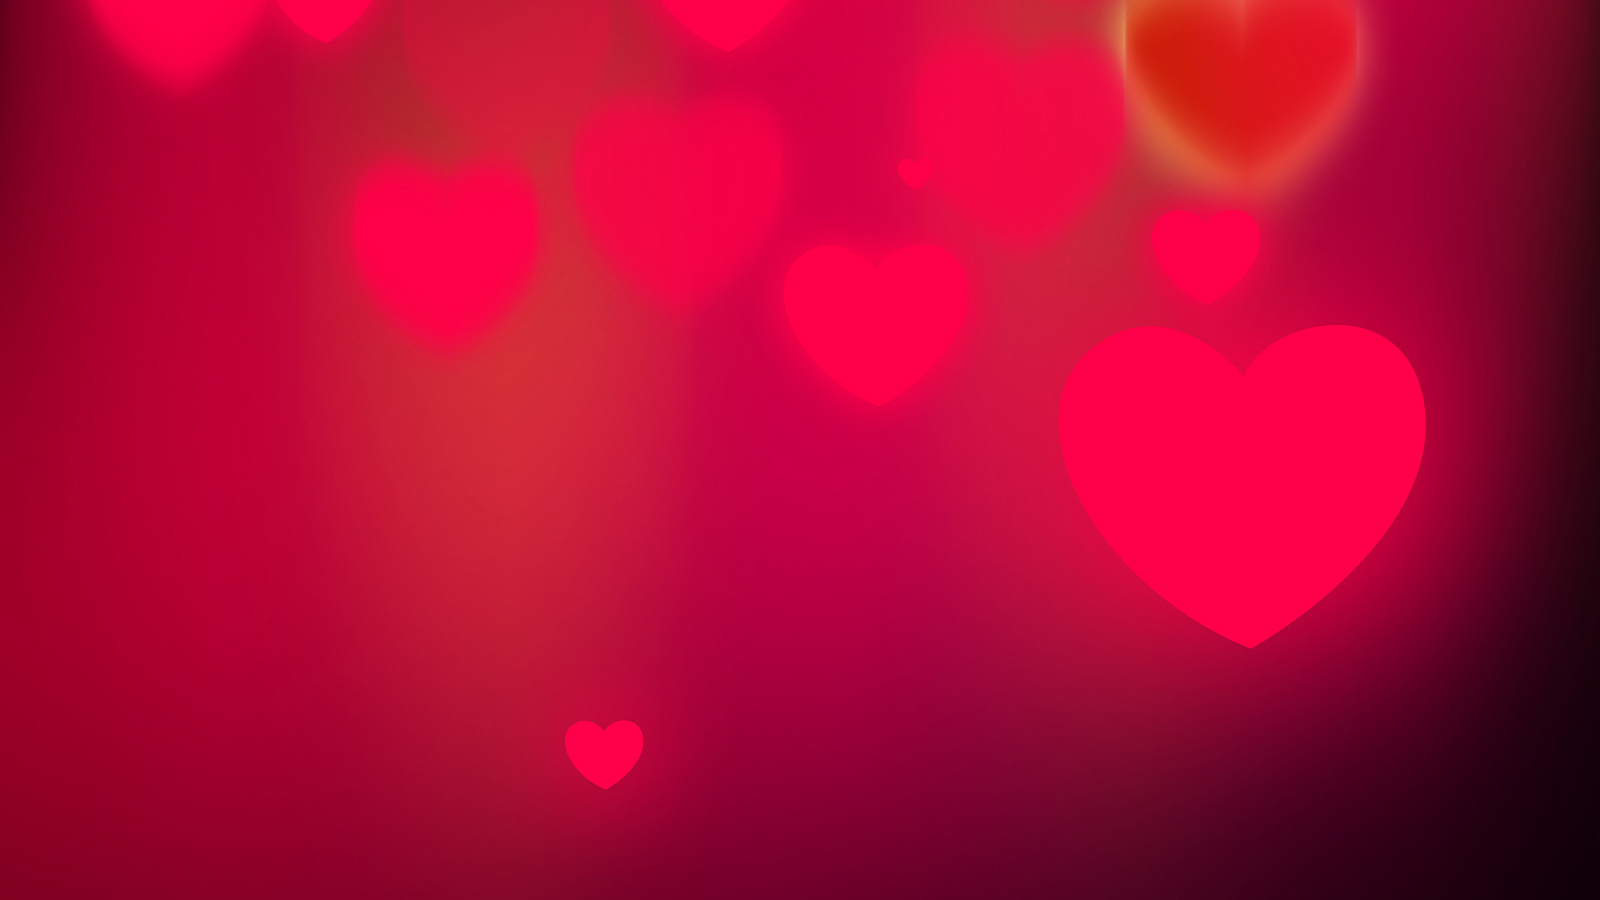 Red Floating Hearts - Minimal Valentine Pink Background for Presentations and Google Slides Themes